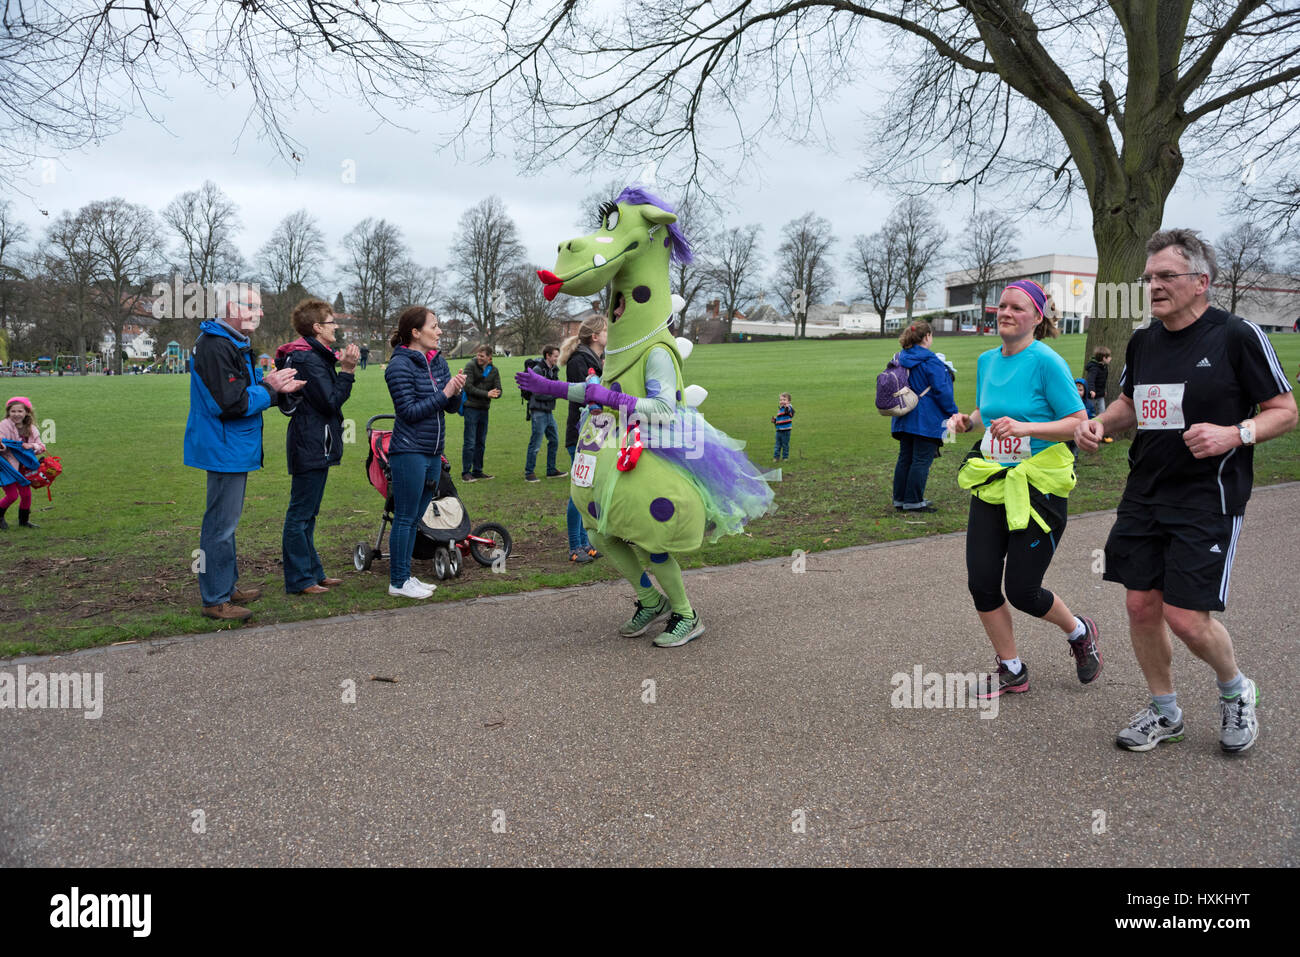 Runners pass through The Quarry park in the Shrewsbury 10k race, March 2017 - Stock Image